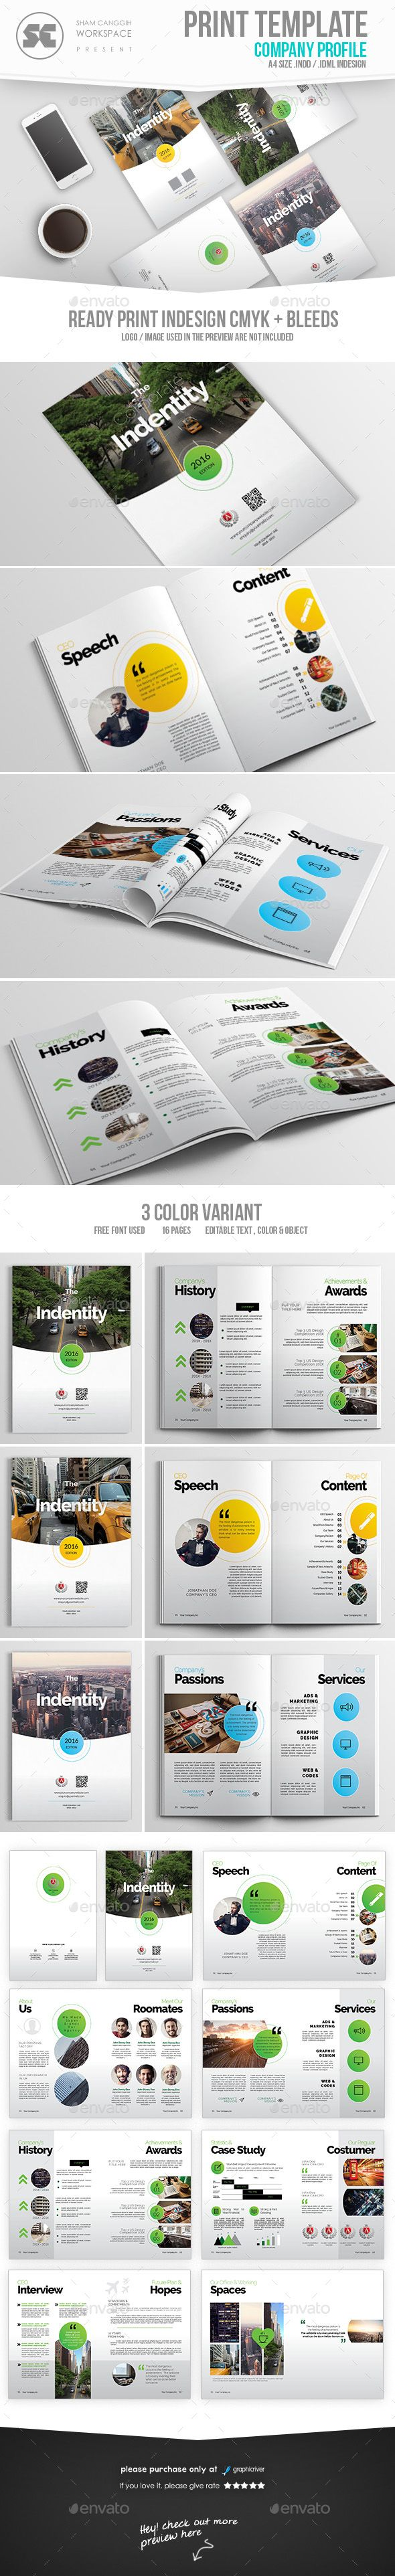 Pin by Maria Alena on Brochure Templates Pinterest